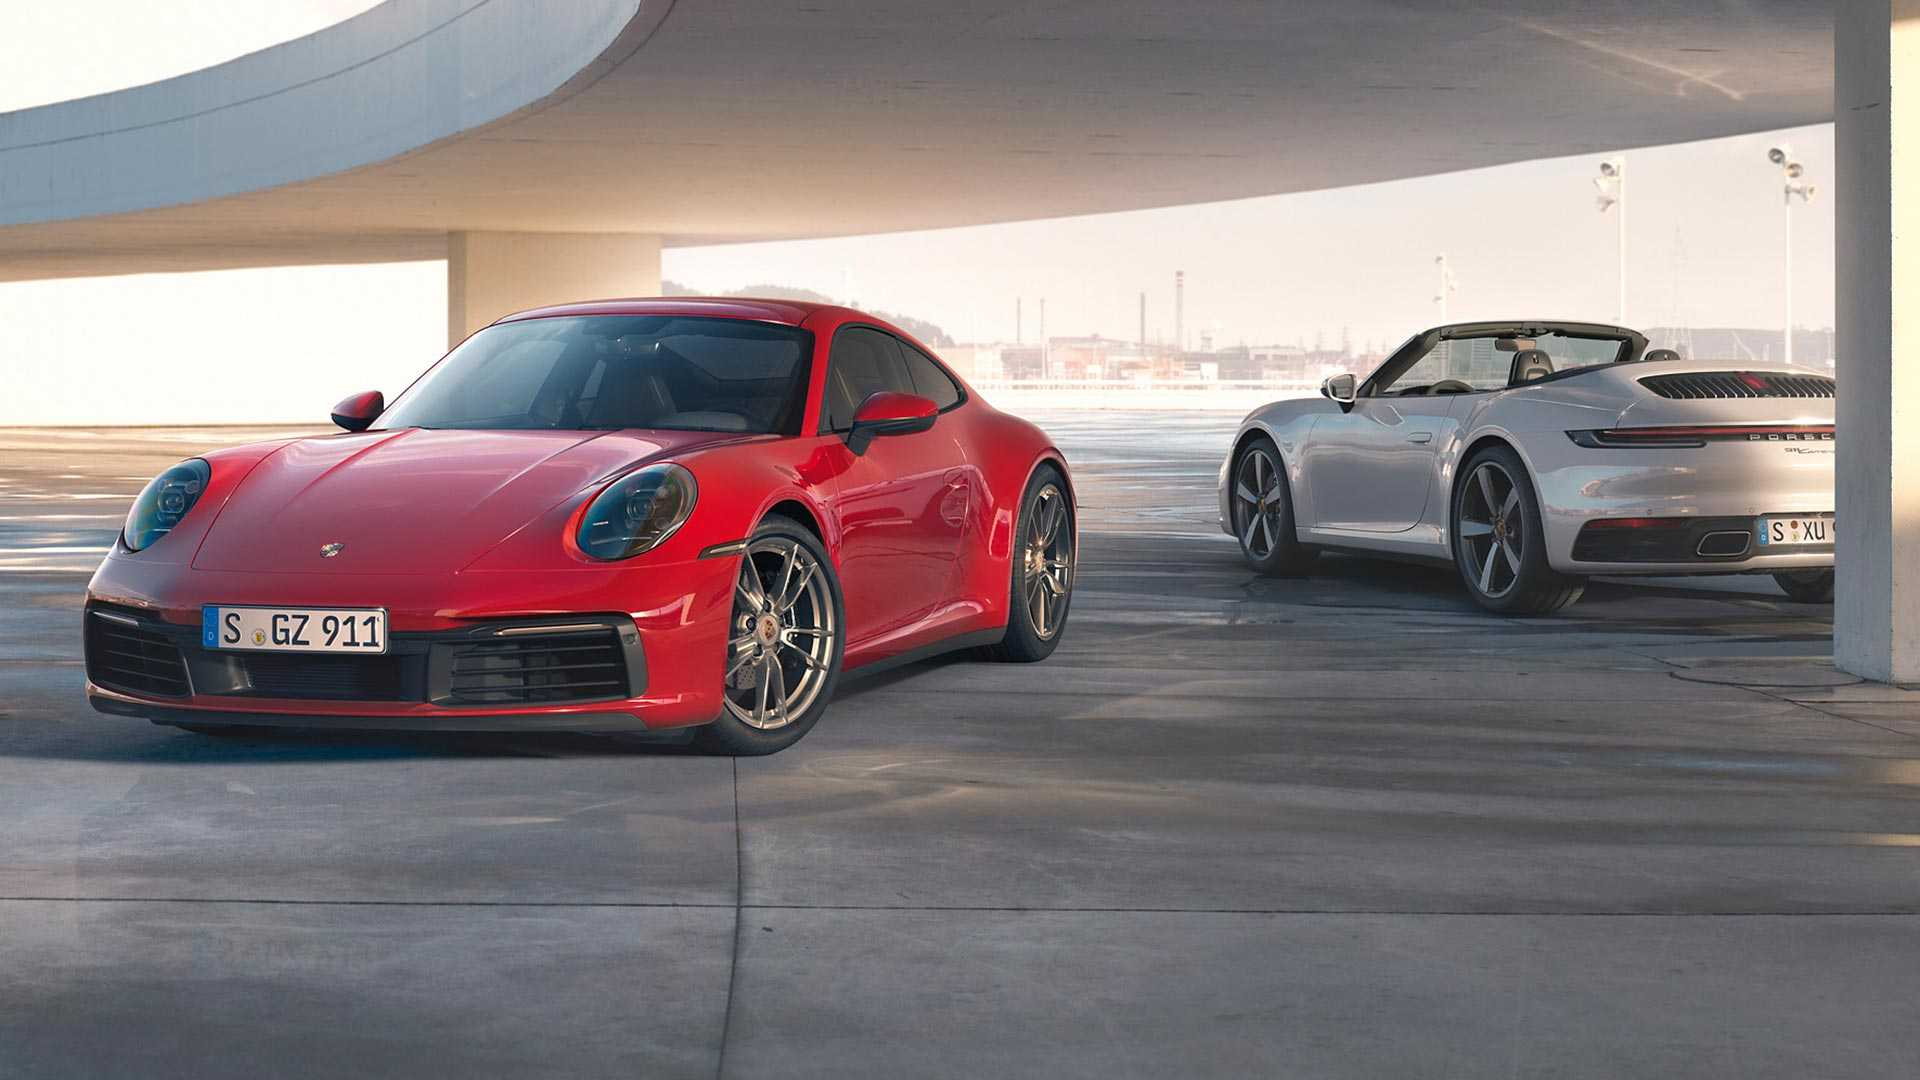 Porsche 911 Is (Sort Of) The Most Profitable Car Of The Year: Report